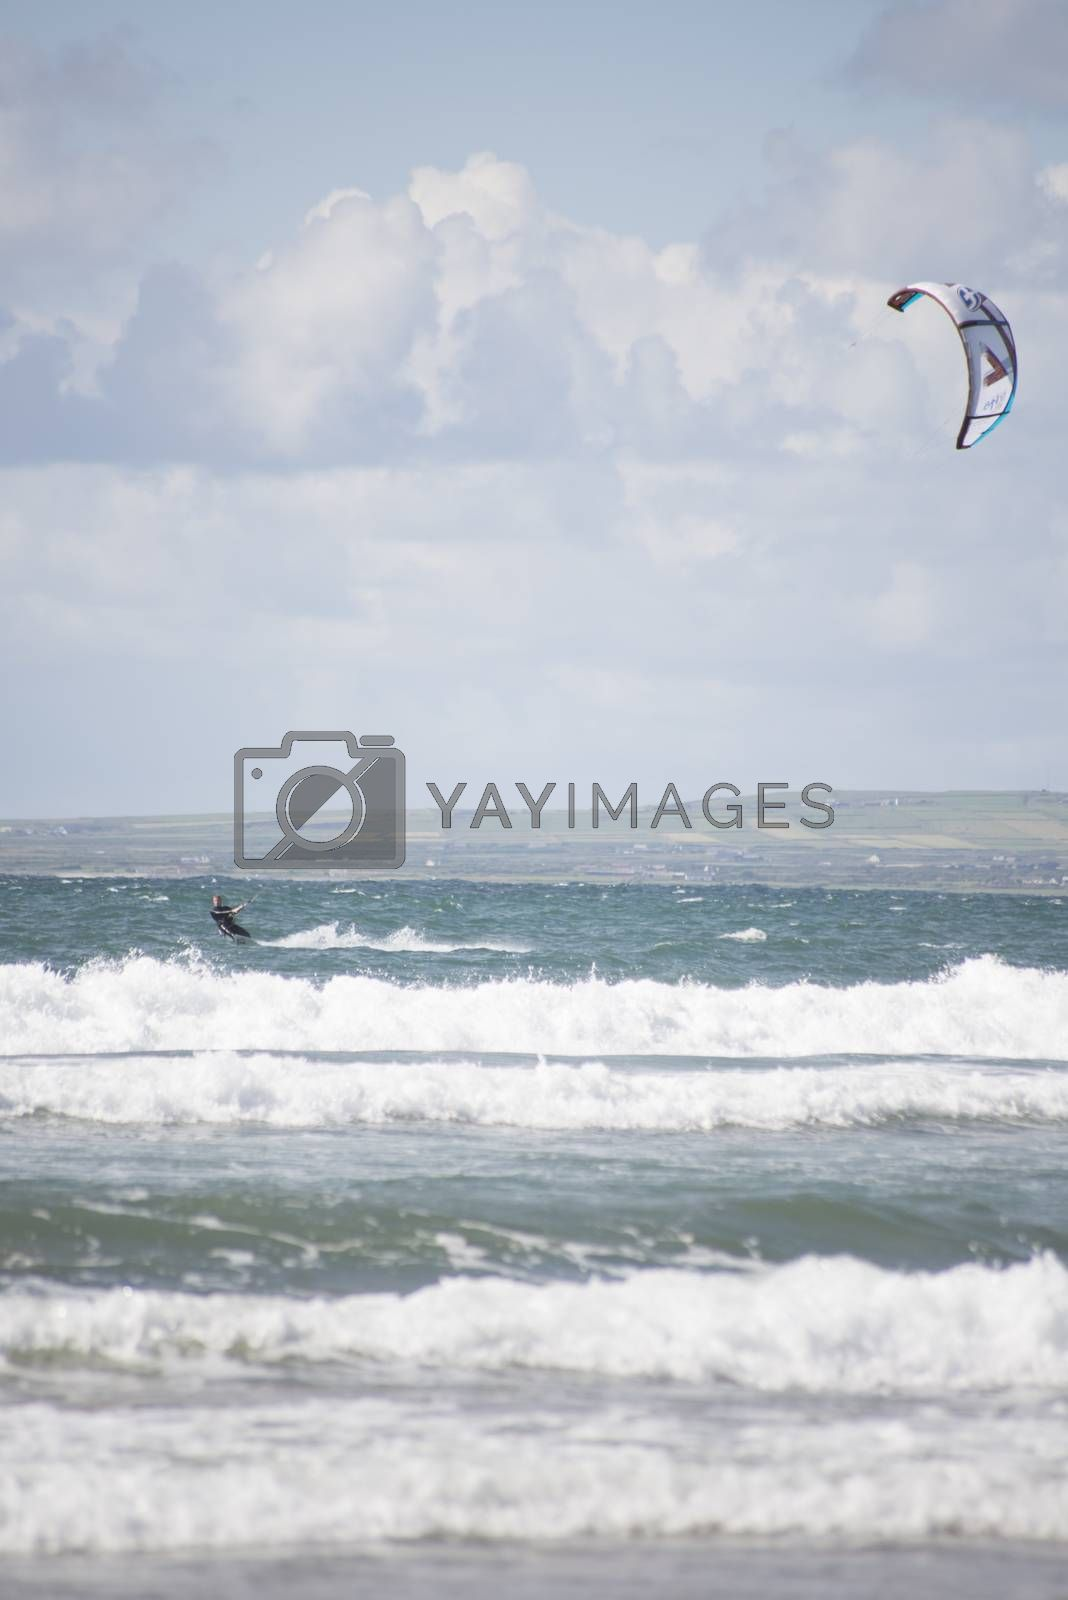 kite surfer on beautiful waves at beach in ballybunion county kerry ireland on the wild atlantic way